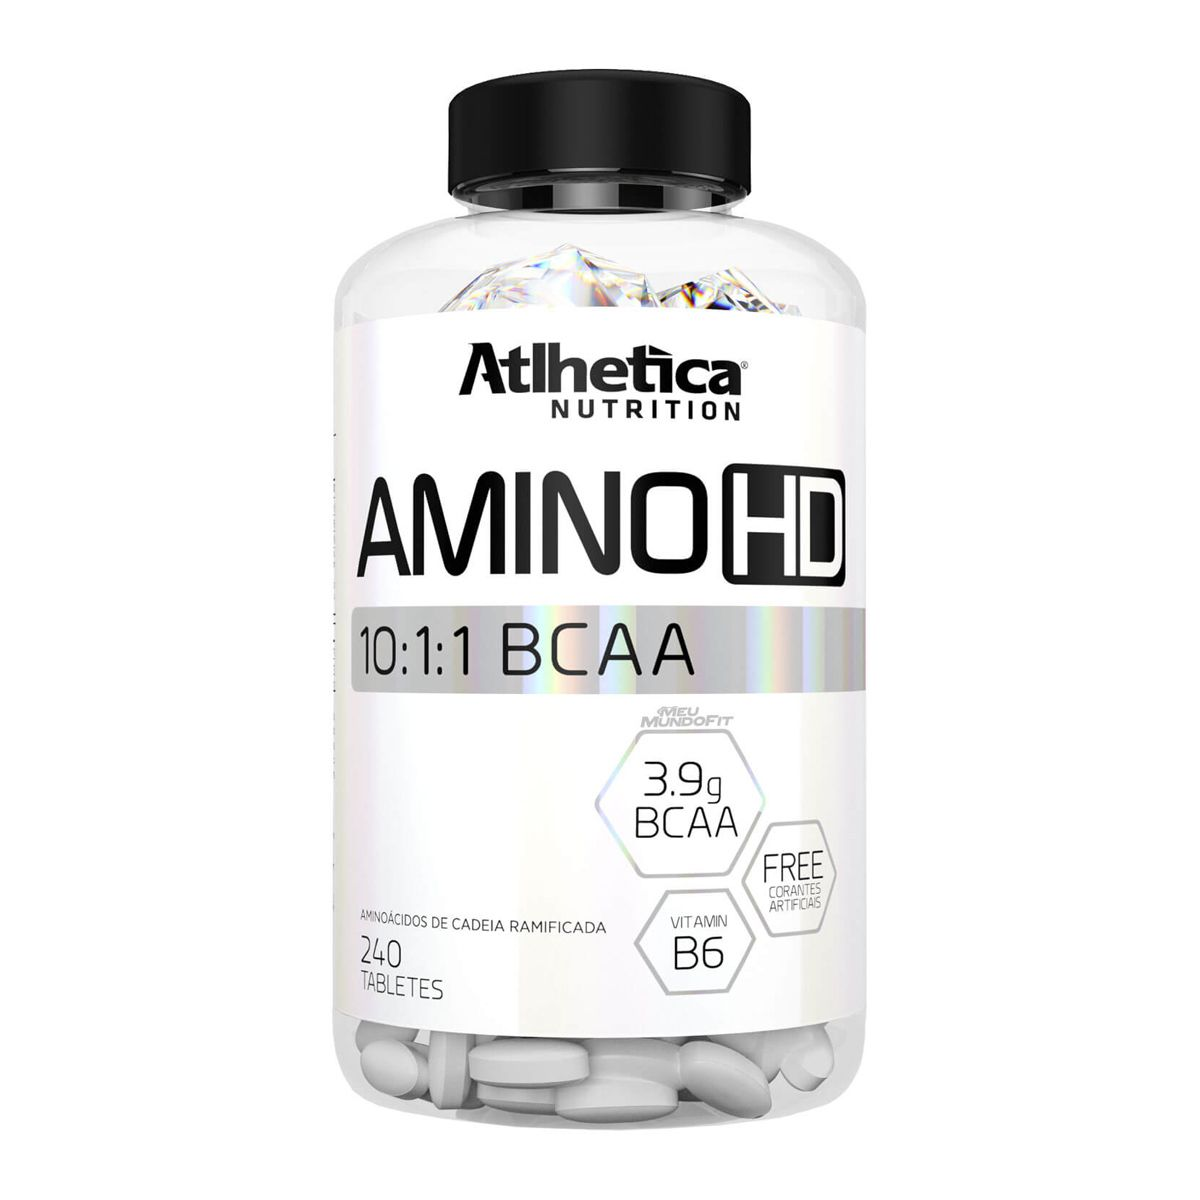 Amino HD 10:1:1 - 240 Tabletes - Atlhetica Nutrition